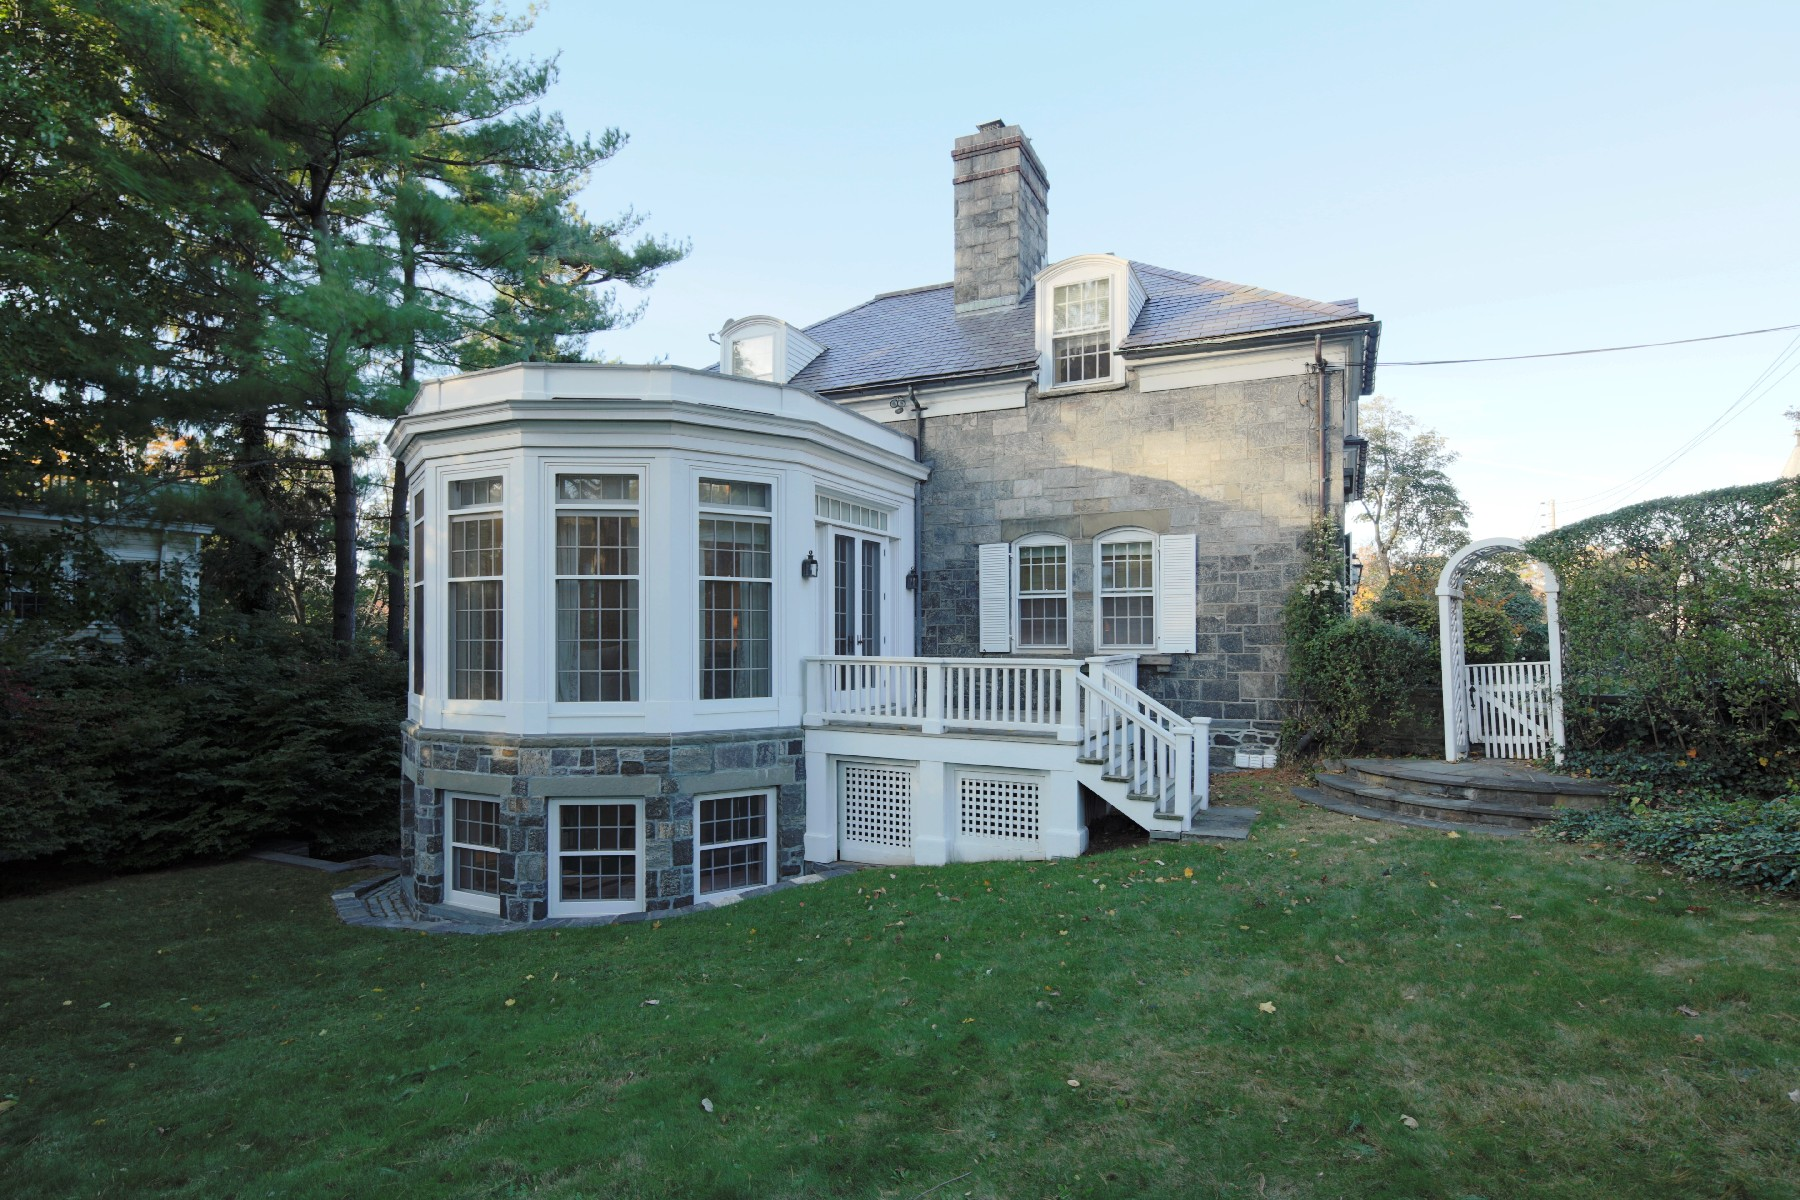 Maison unifamiliale pour l Vente à 1852 Remarkable Stone Carriage House 5253 Sycamore Avenue Riverdale, New York 10471 États-Unis